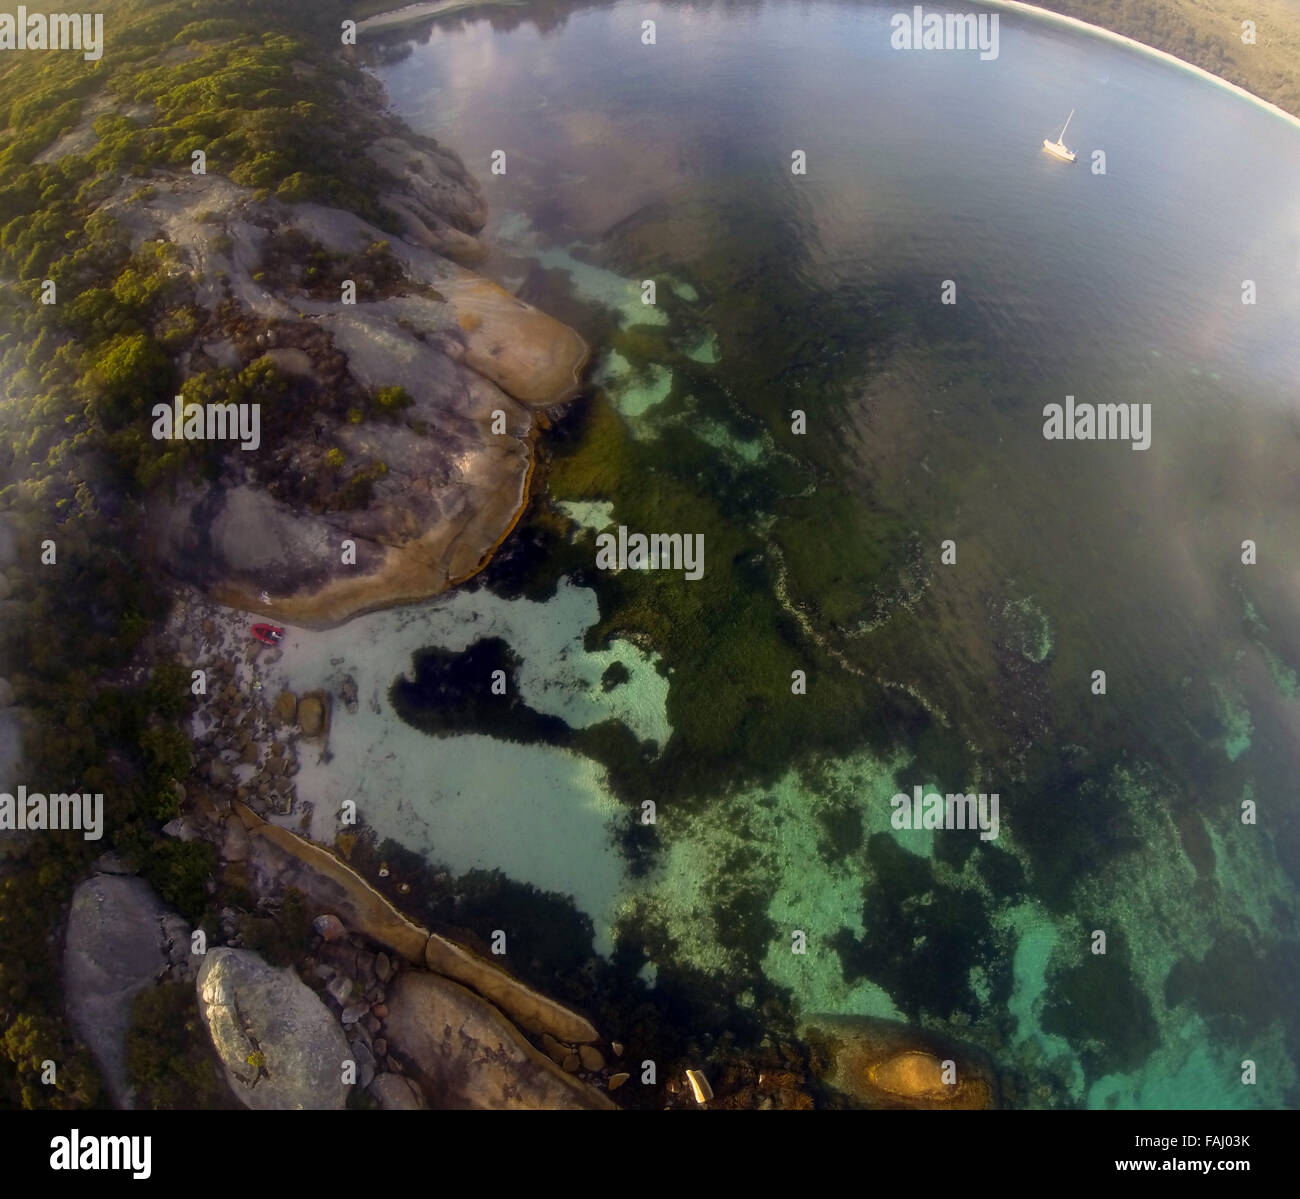 Aerial view of seagrass meadows and rocky coast of Frenchman Bay, Albany, Western Australia - Stock Image